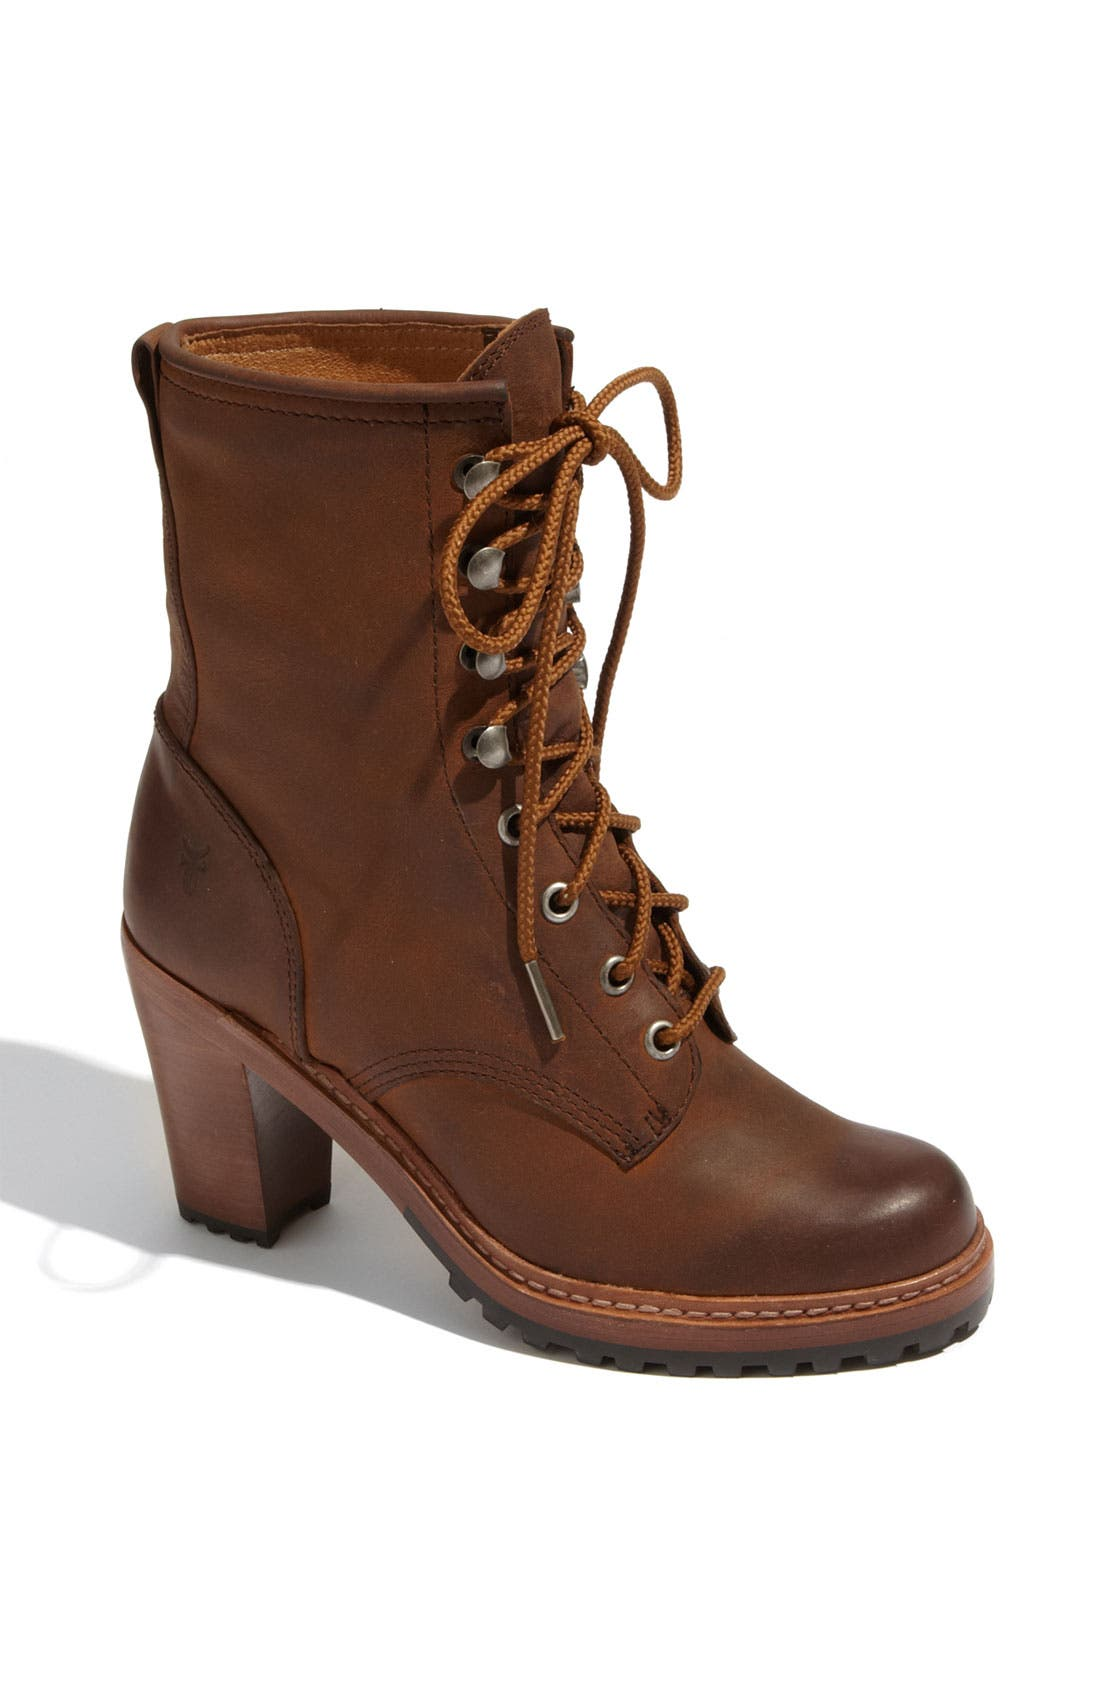 Main Image - Frye 'Lucy' Boot